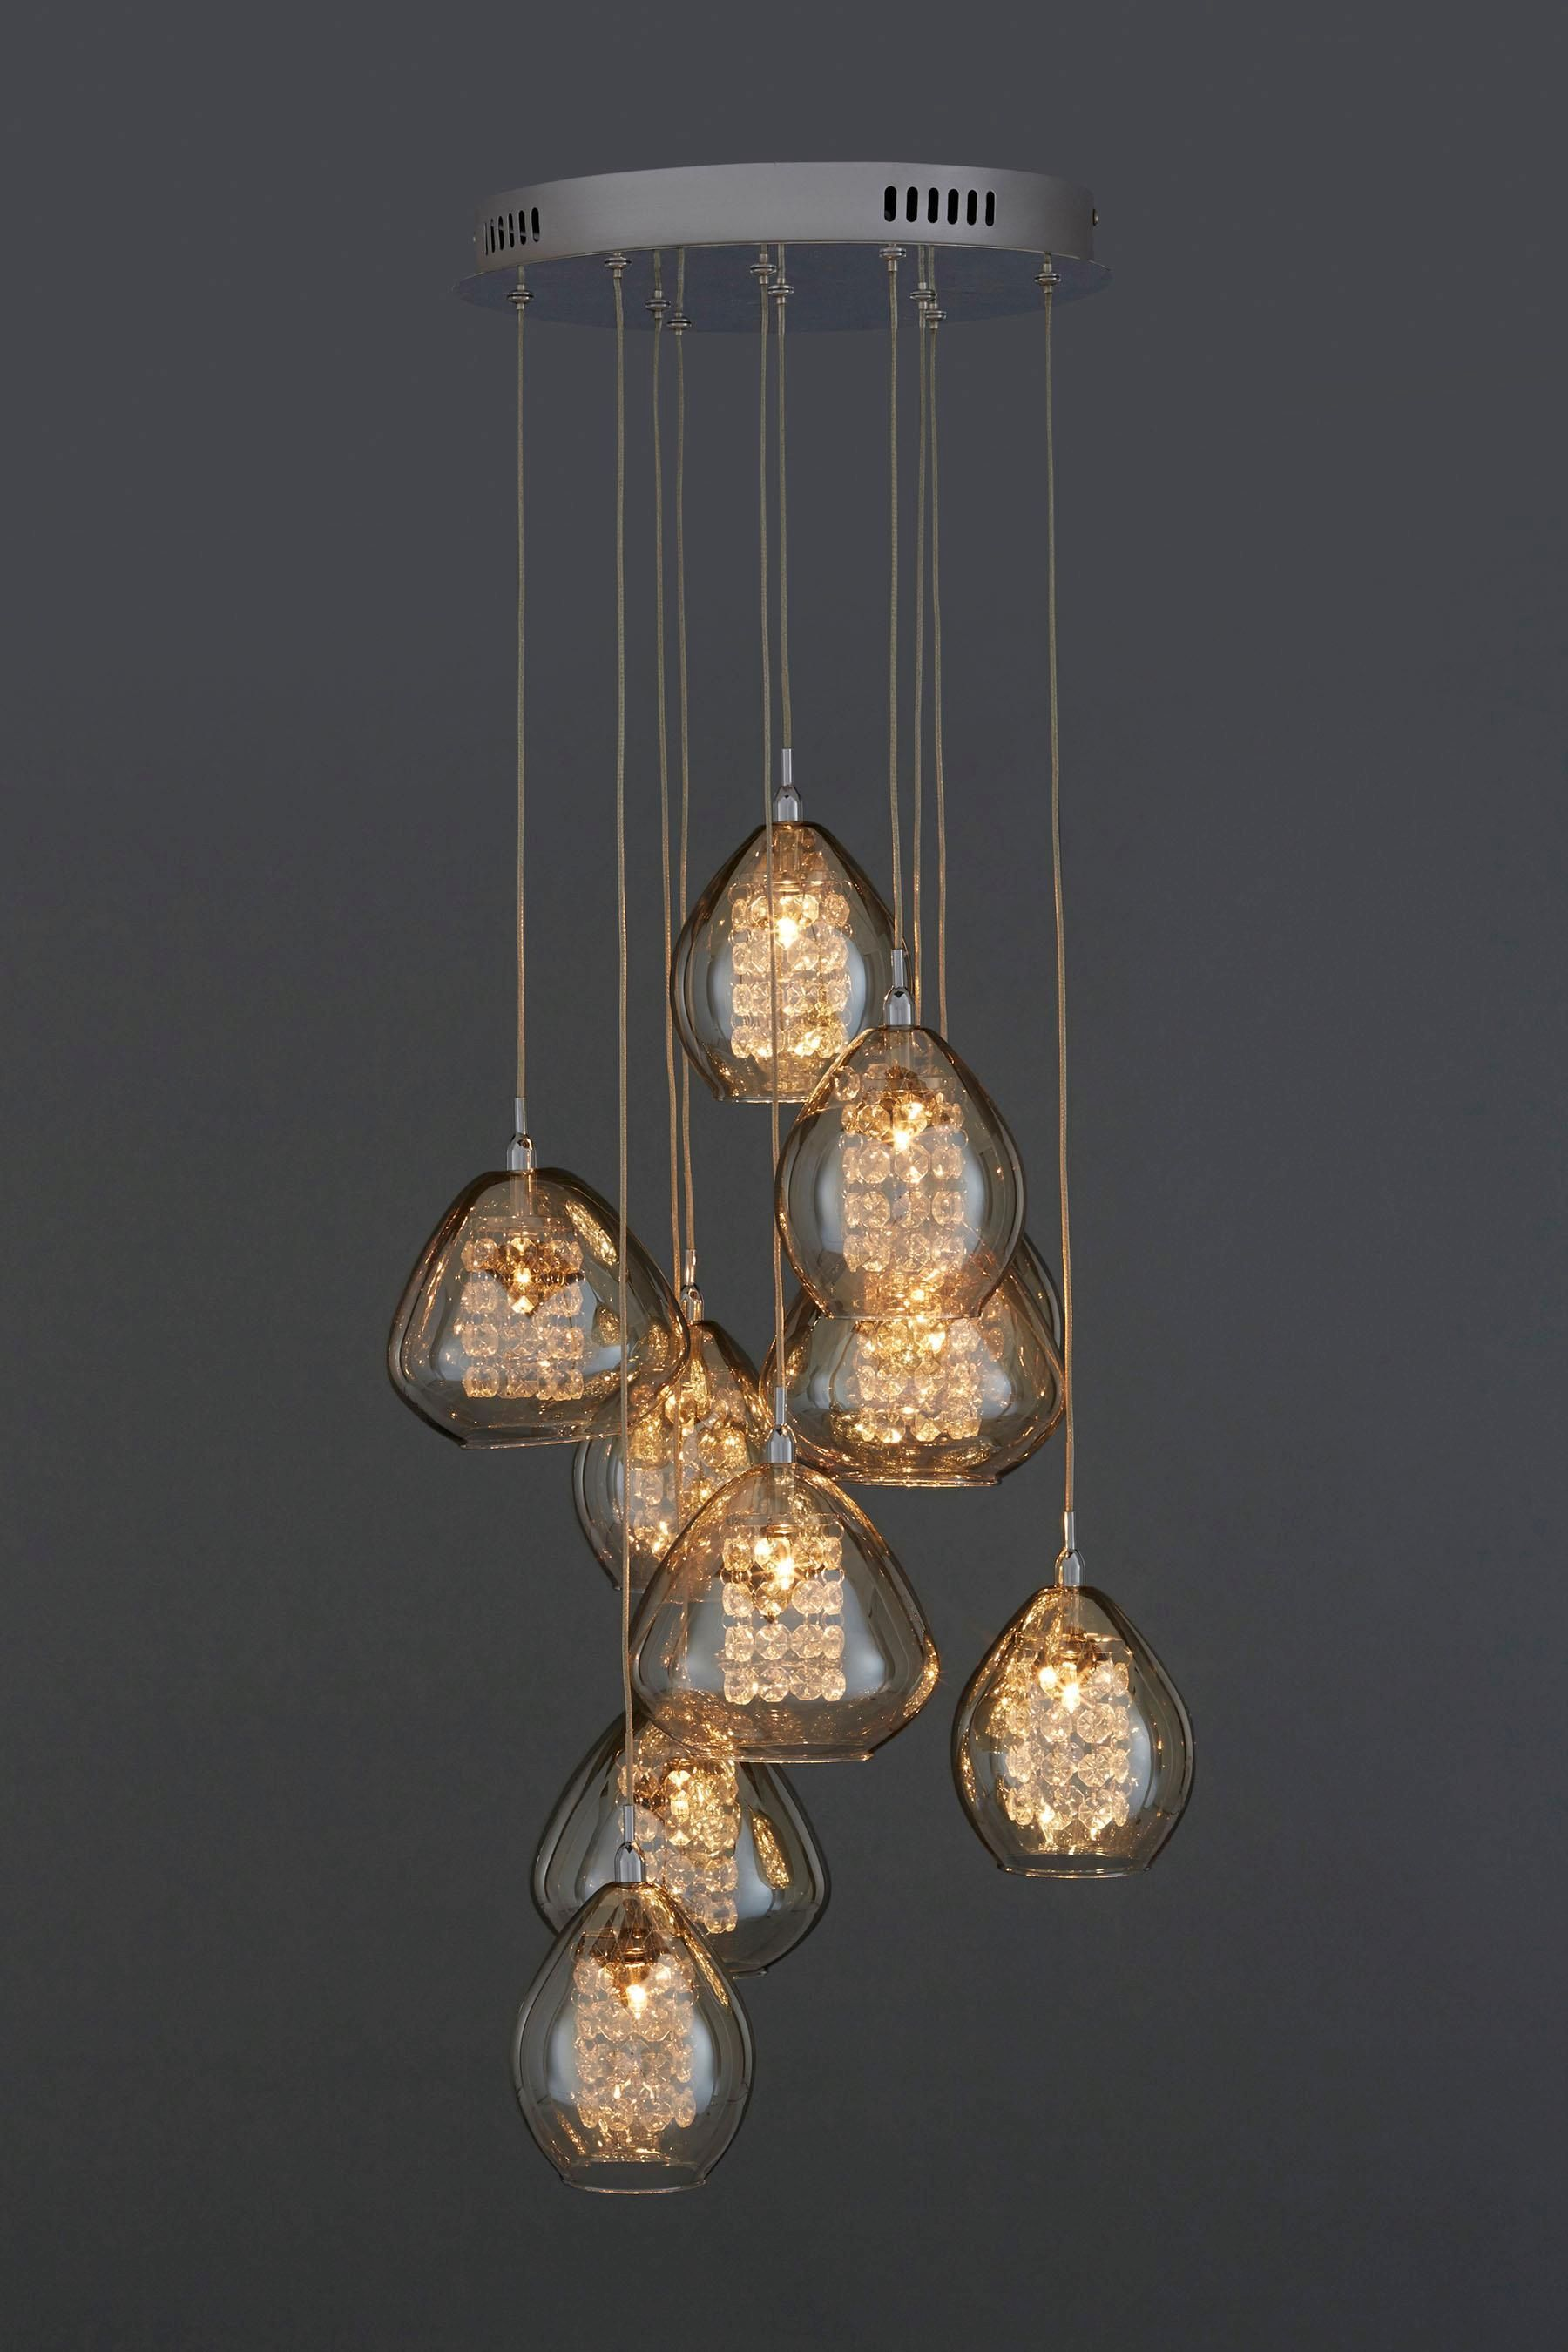 massari leucos design noti and destijds product toso pendant chandeliers chandelier renato